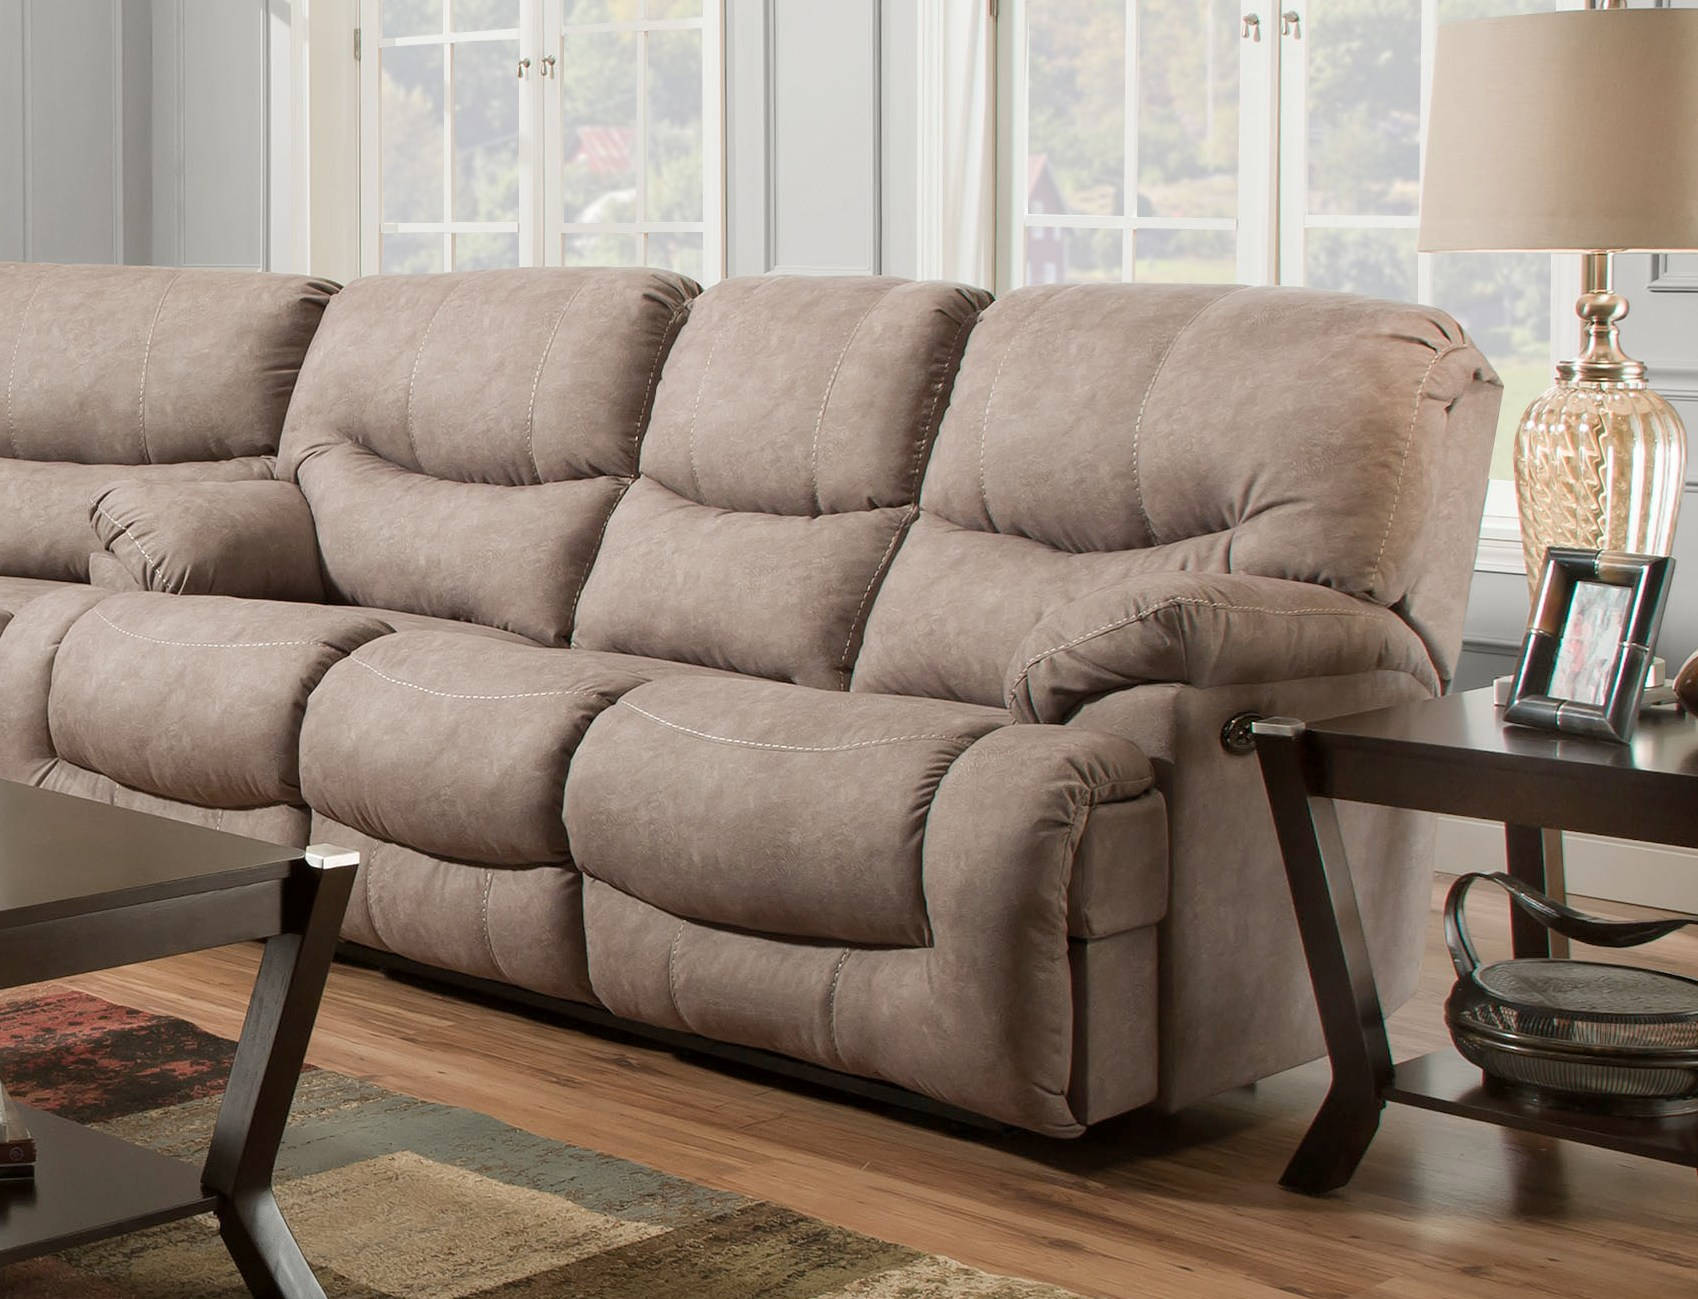 United furniture simmons palermo shale double motion sofa for Shale sofa bed